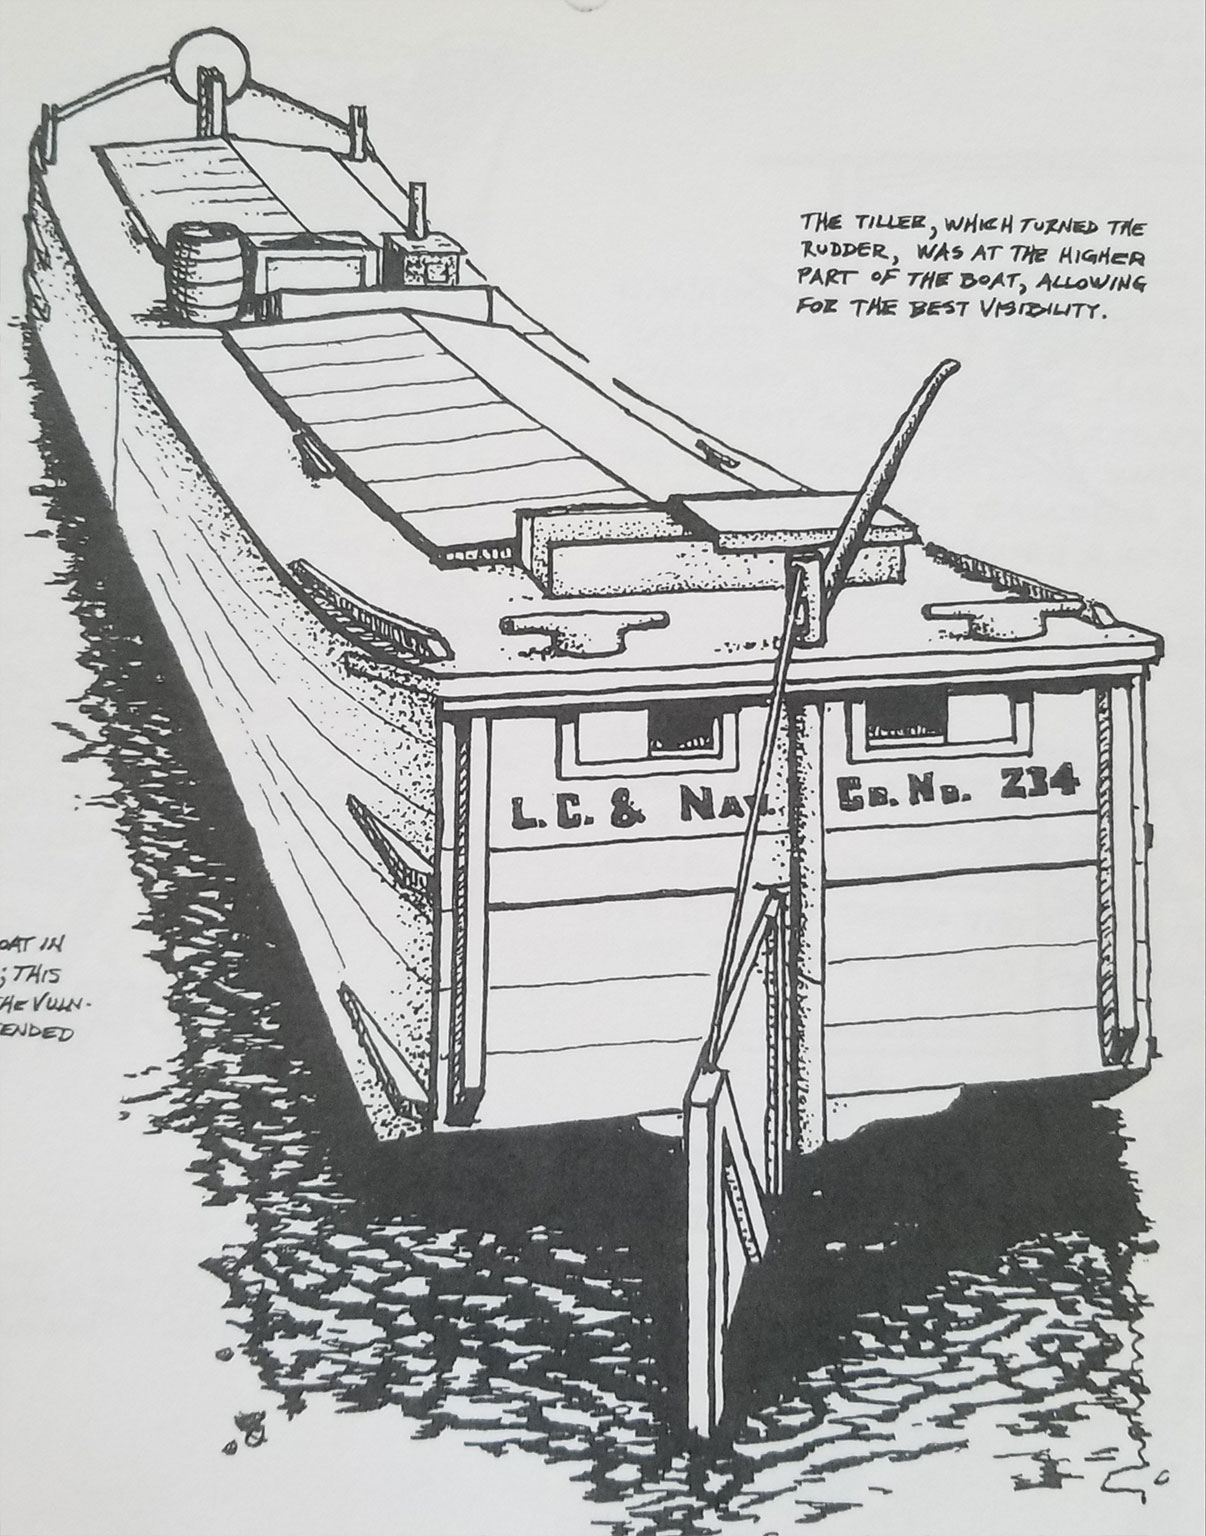 As you can see in this drawing the tiller was connected to the rudder and was the steering mechanism used to turn the boat.